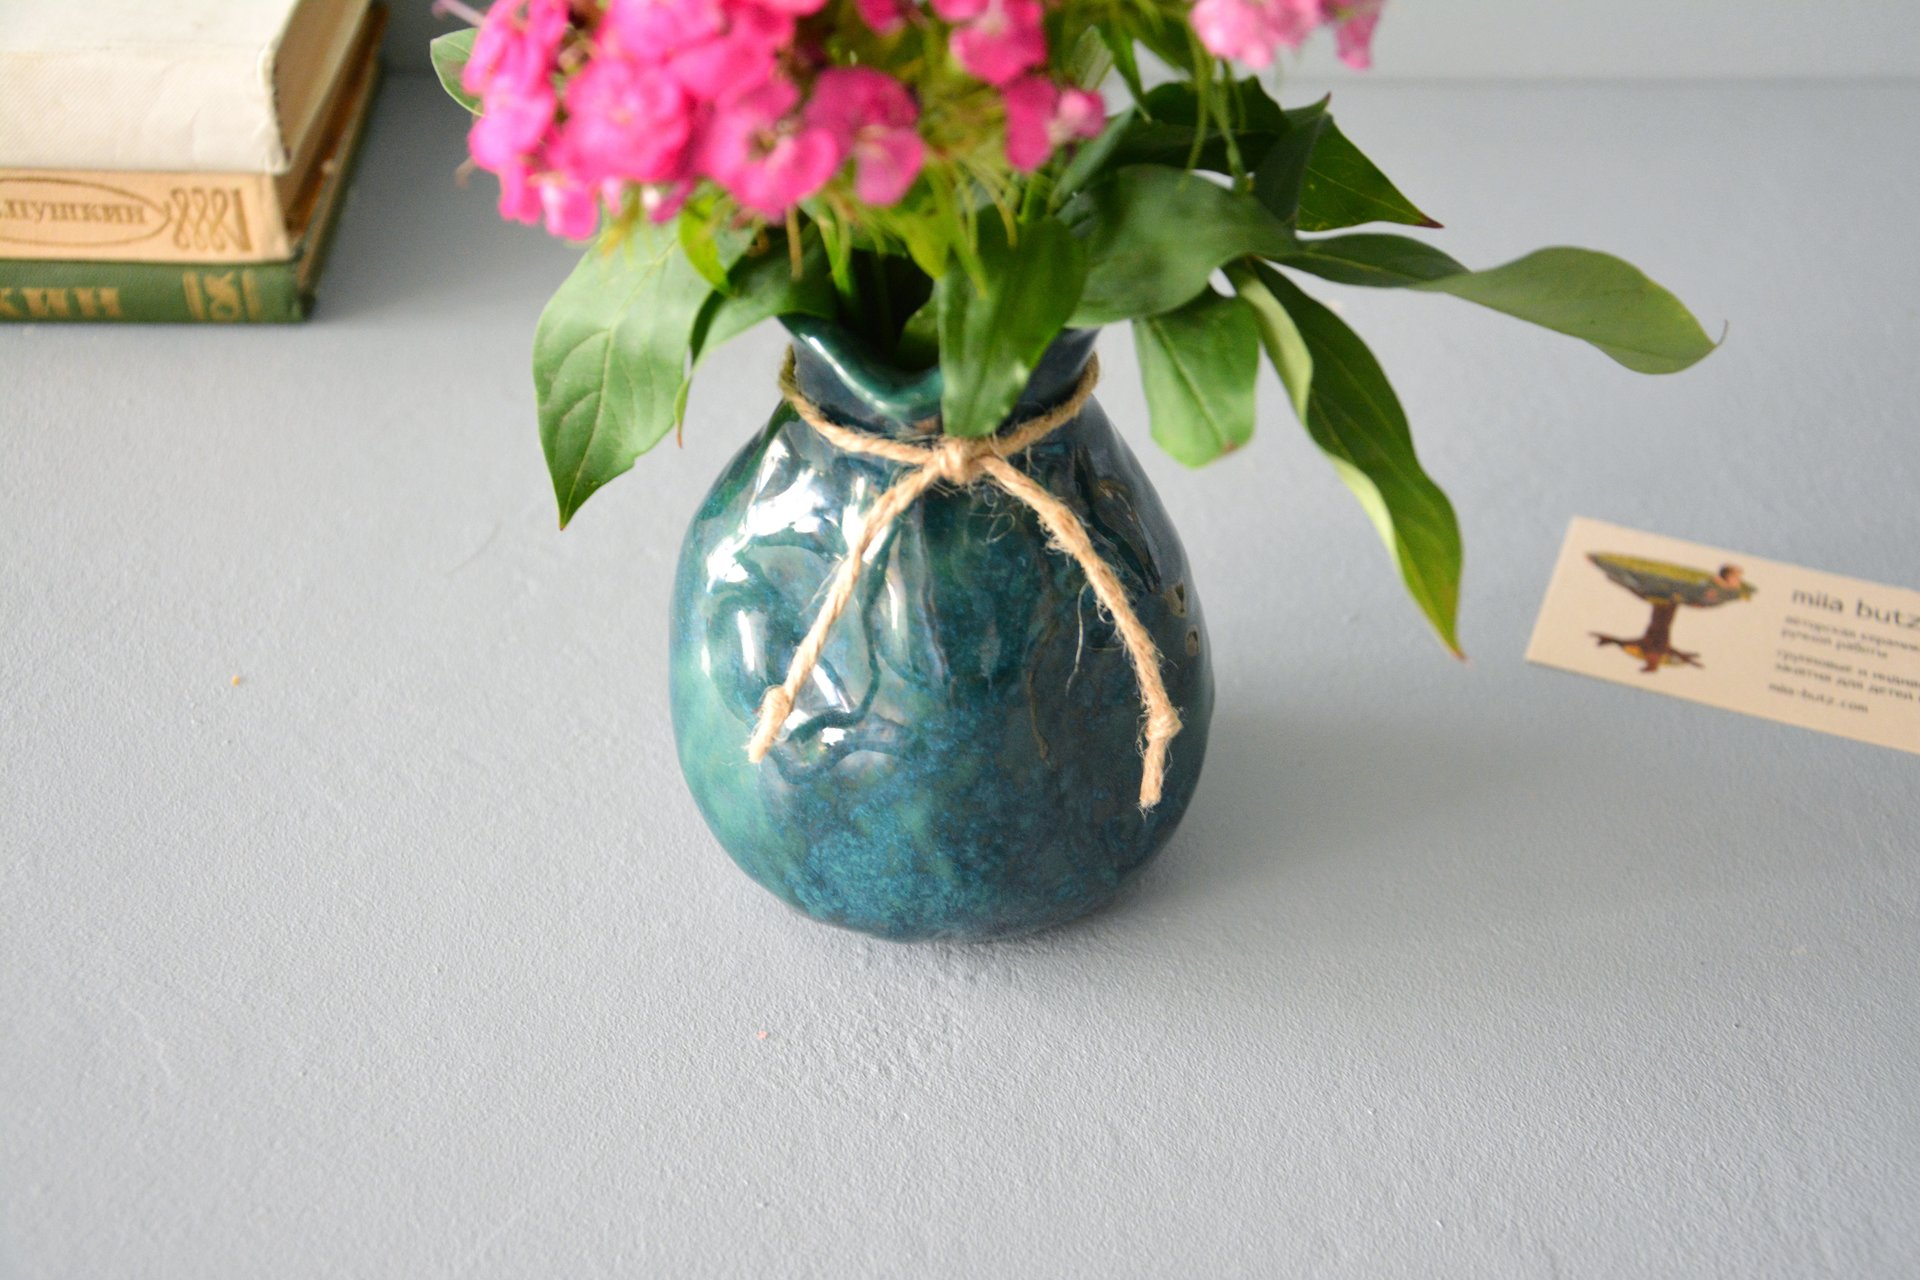 Exclusive vase is an incredible green bag, height - 12 cm, color - deep emerald, photo 8 of 8. 1028.